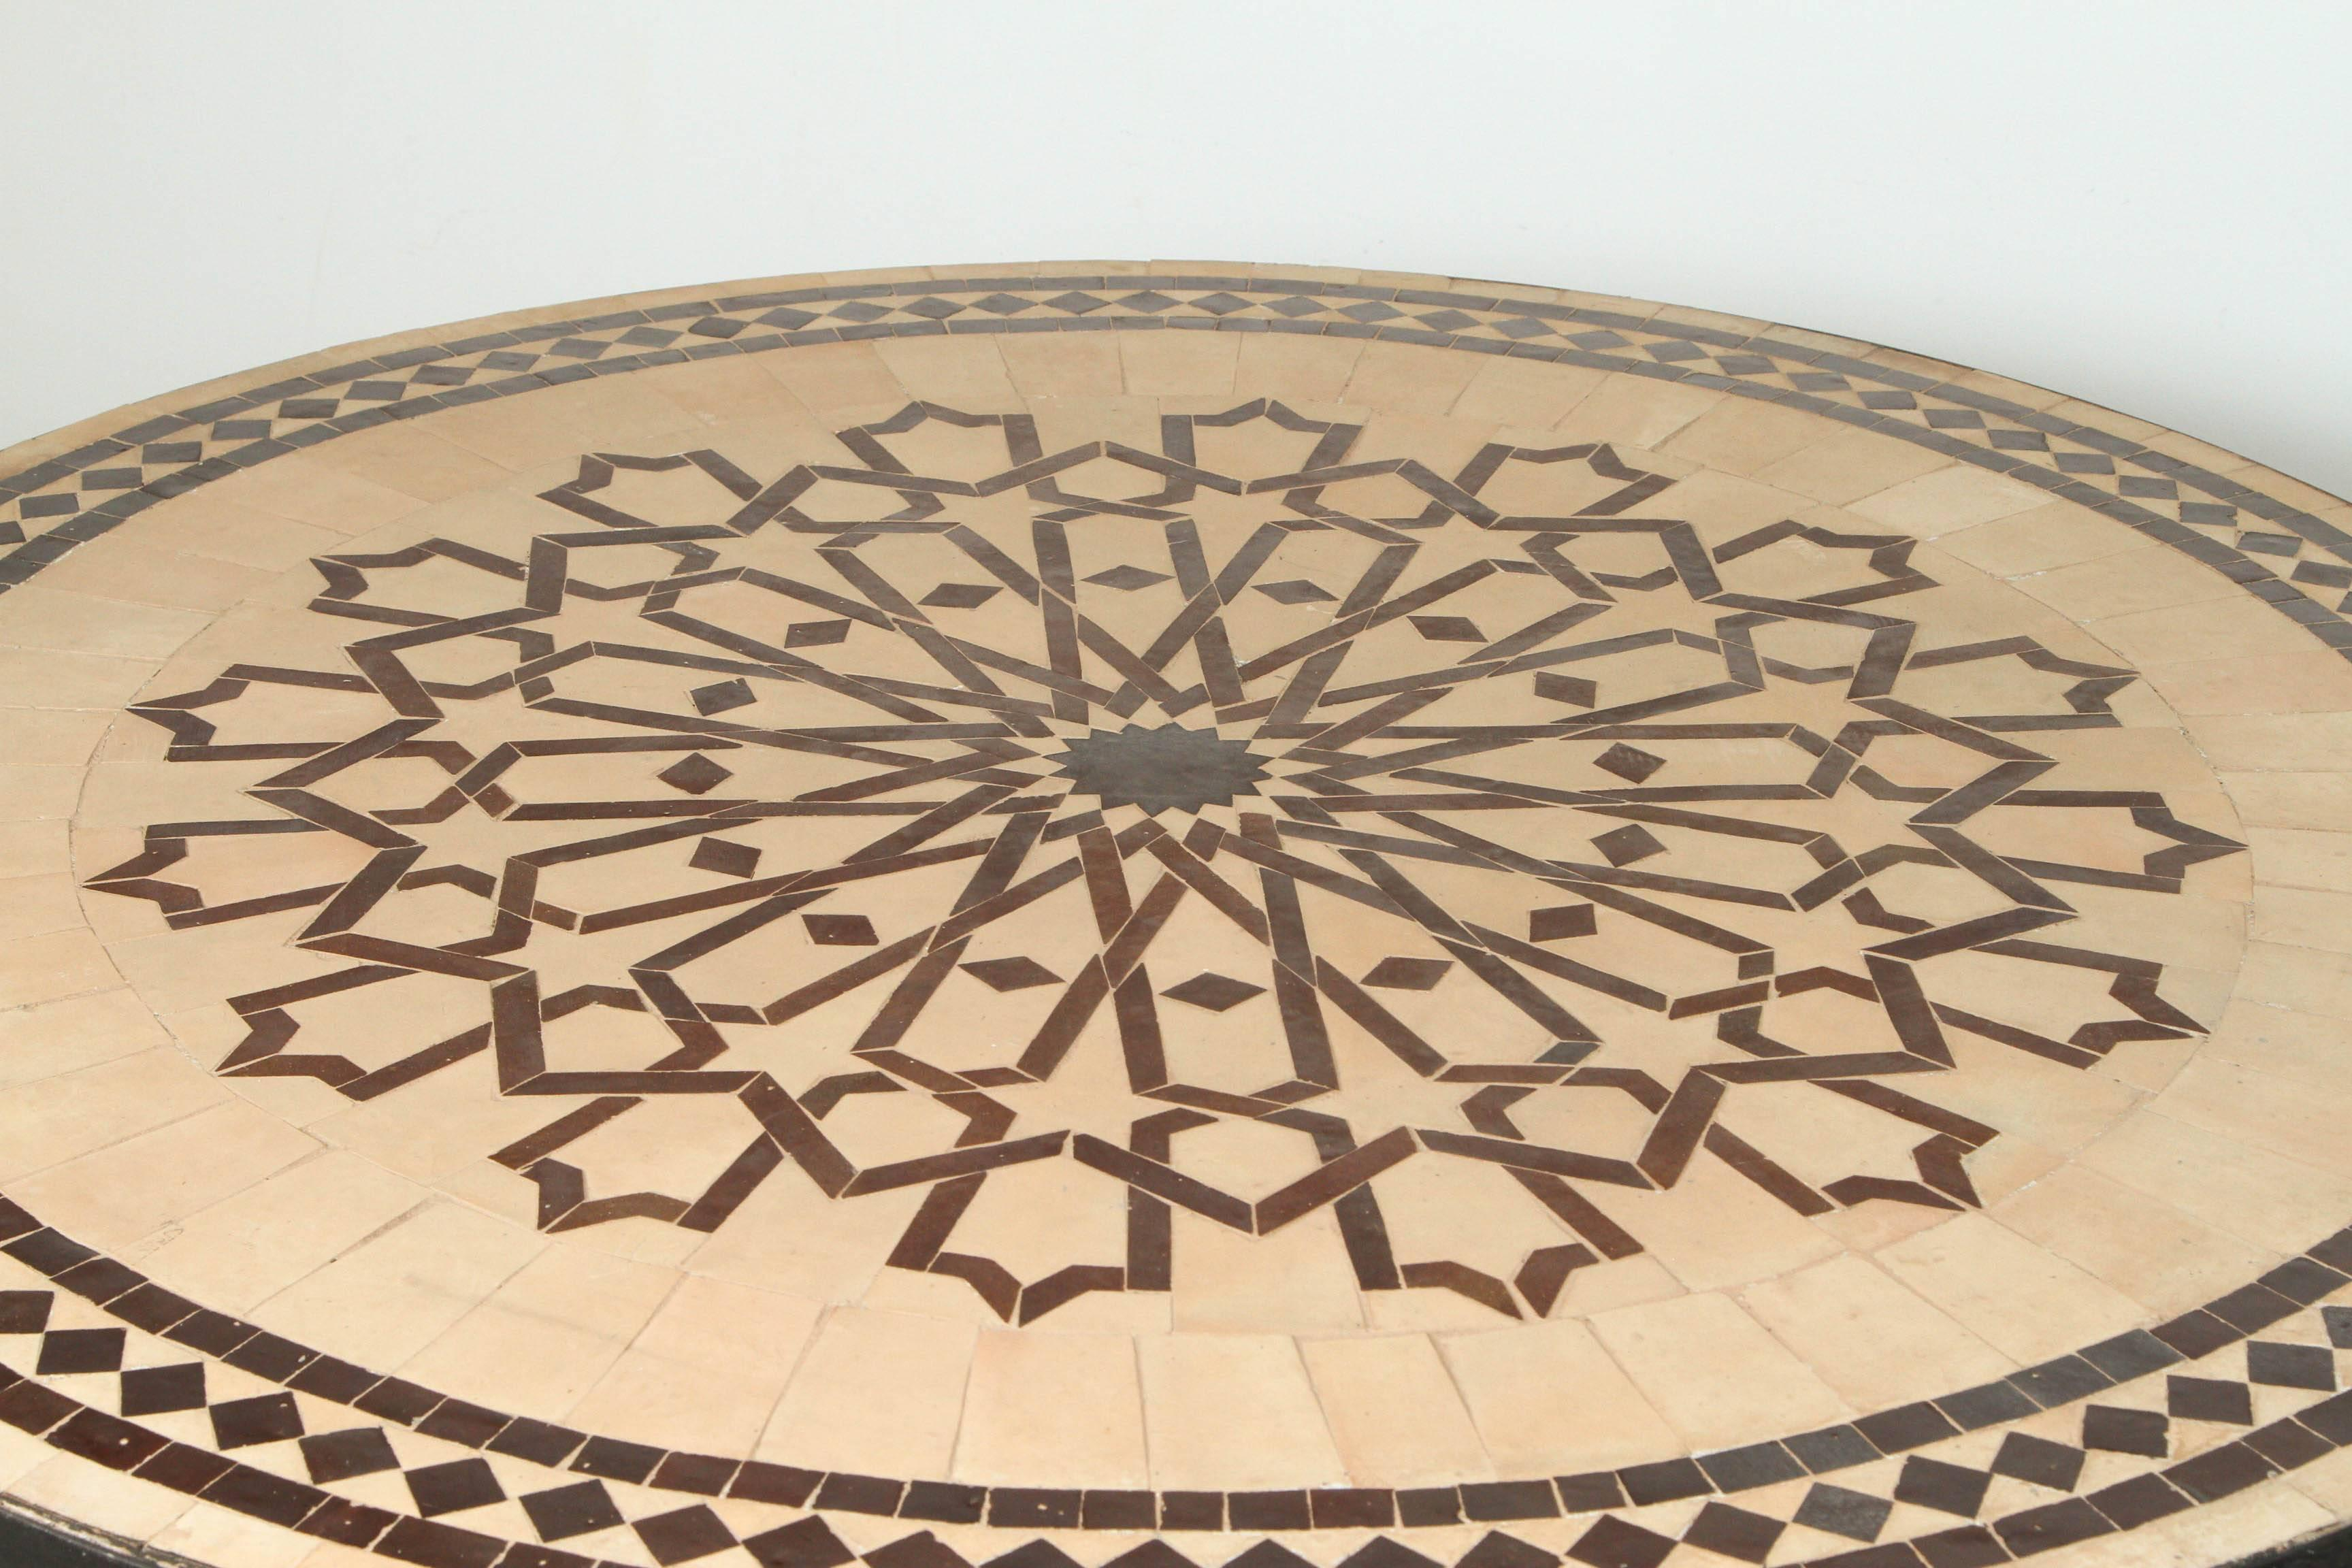 Lovely Moroccan Round Mosaic Outdoor Tile Table on Iron ... on Outdoor Living Iron Mosaic id=34941